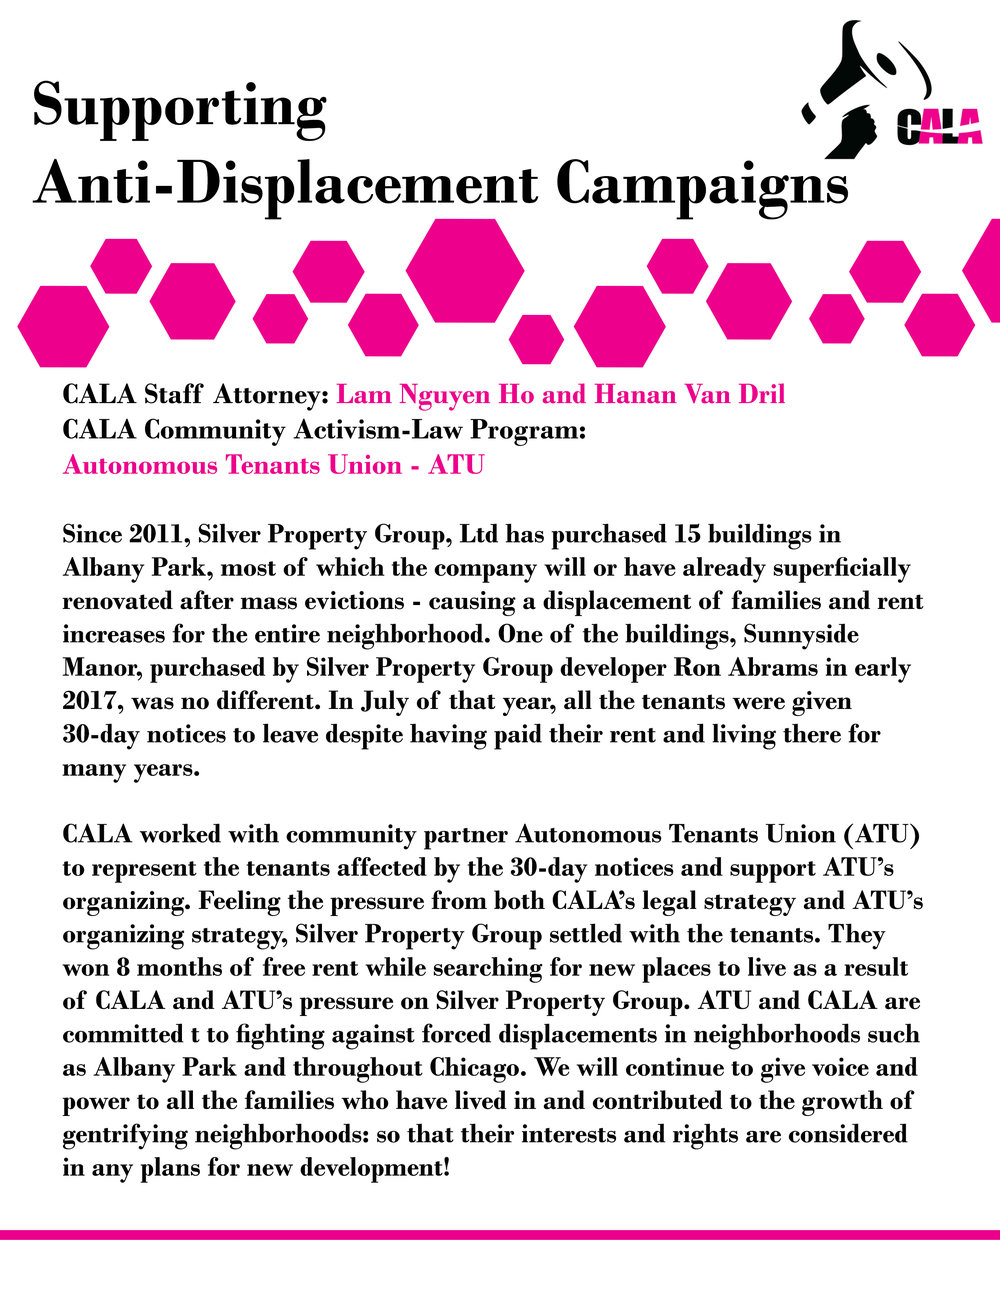 Supporting Anti Displacement Campaigns.jpg